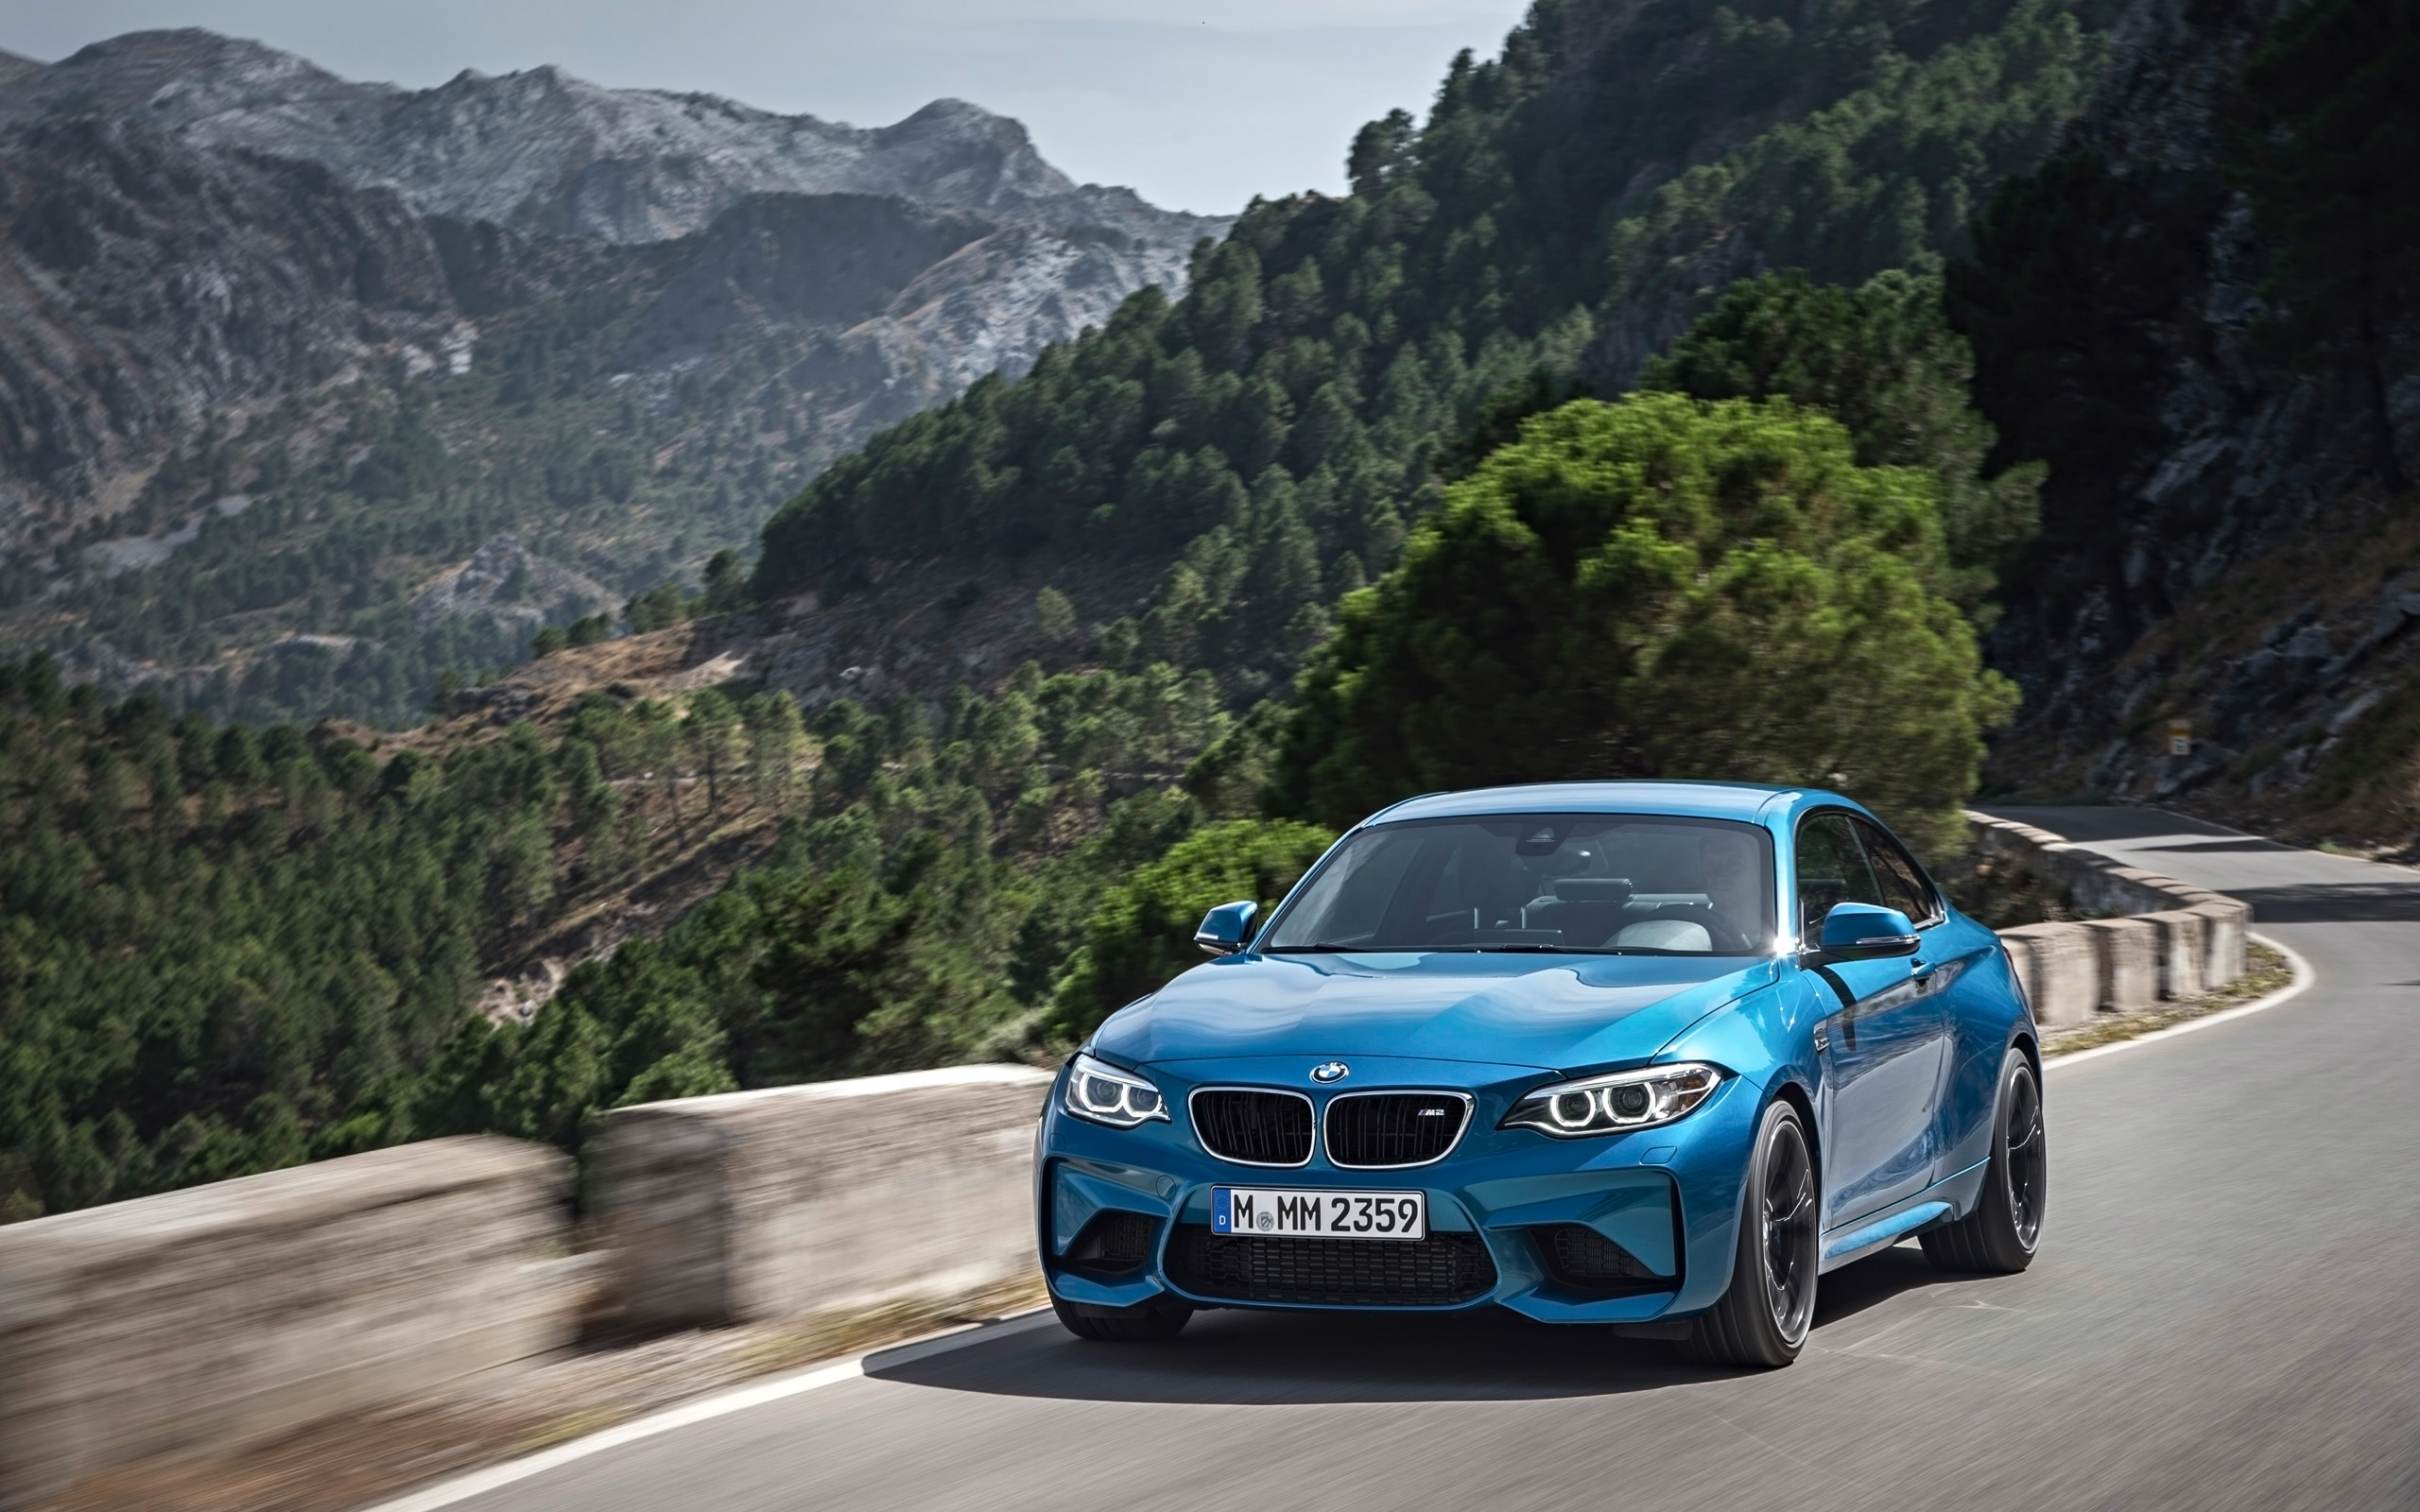 2560x1600 - BMW M2 Coupe Wallpapers 12